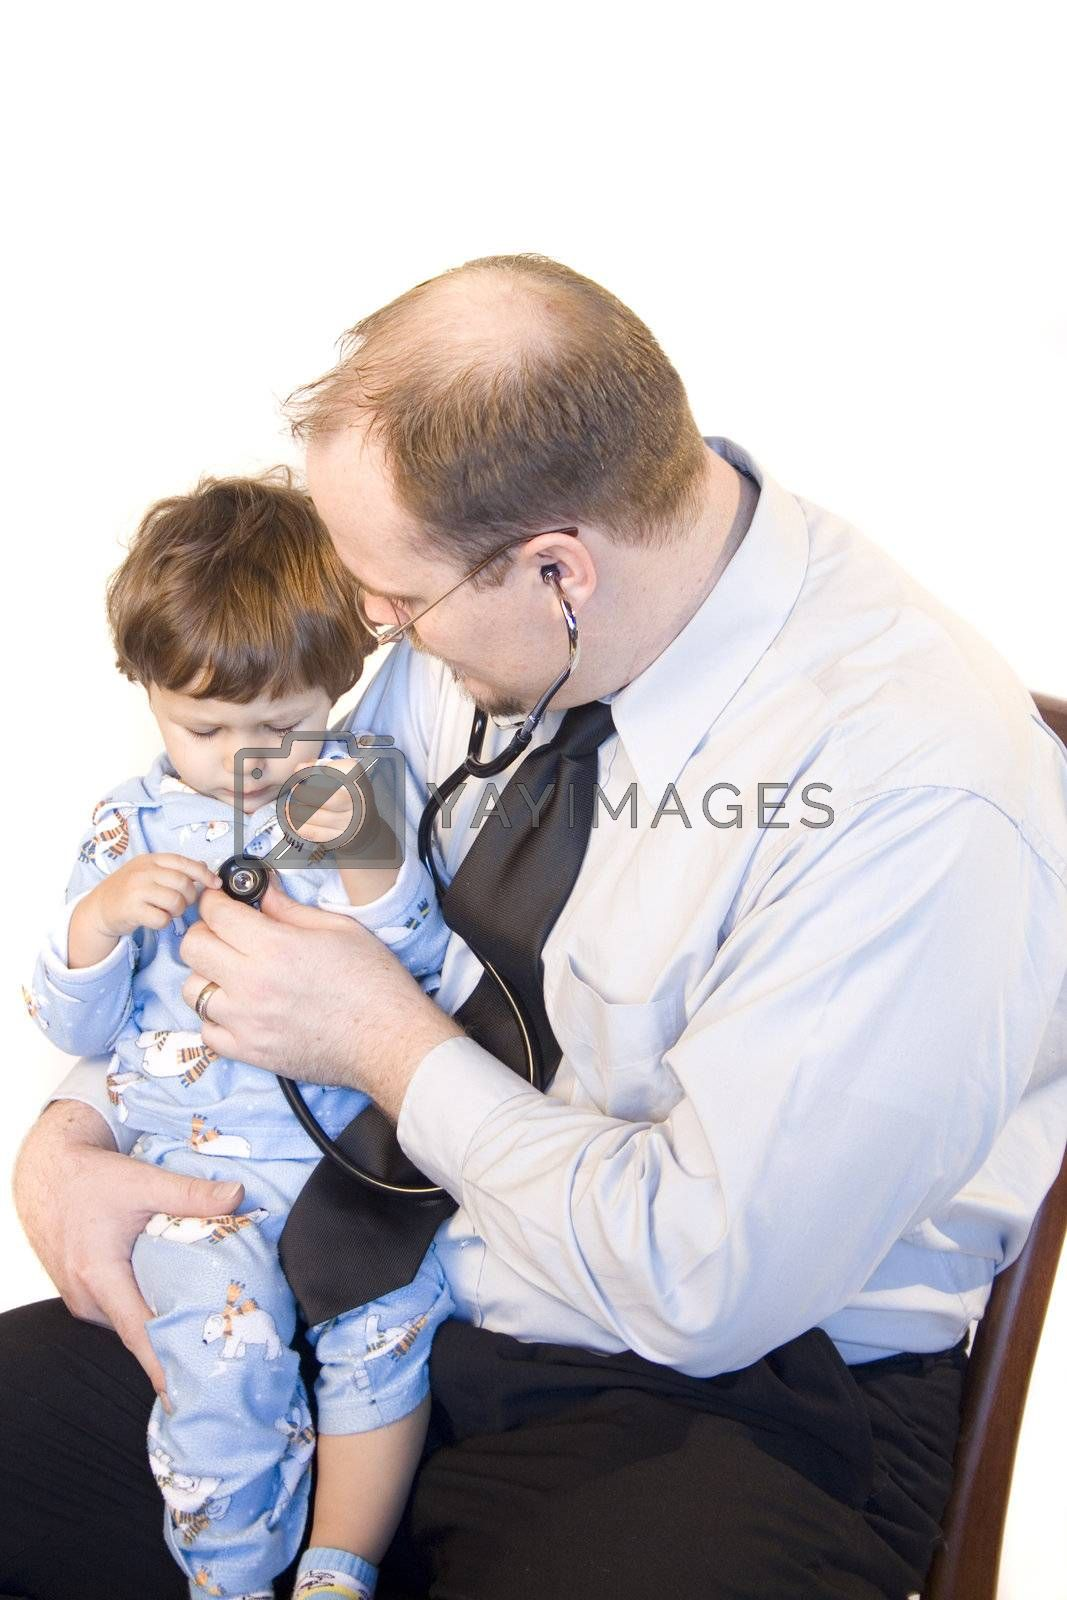 Doctor sitting with young child giving checkup